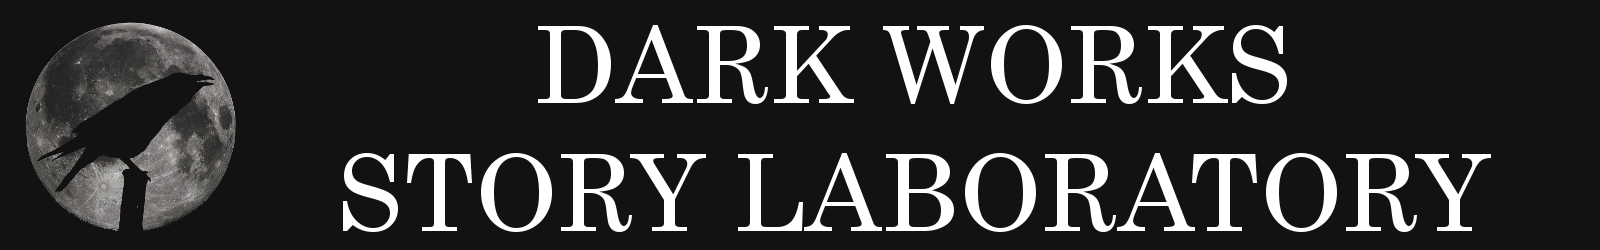 www.darkworkers.com -- Nothing is True, Everything is Permitted -- www.darkworkers.com